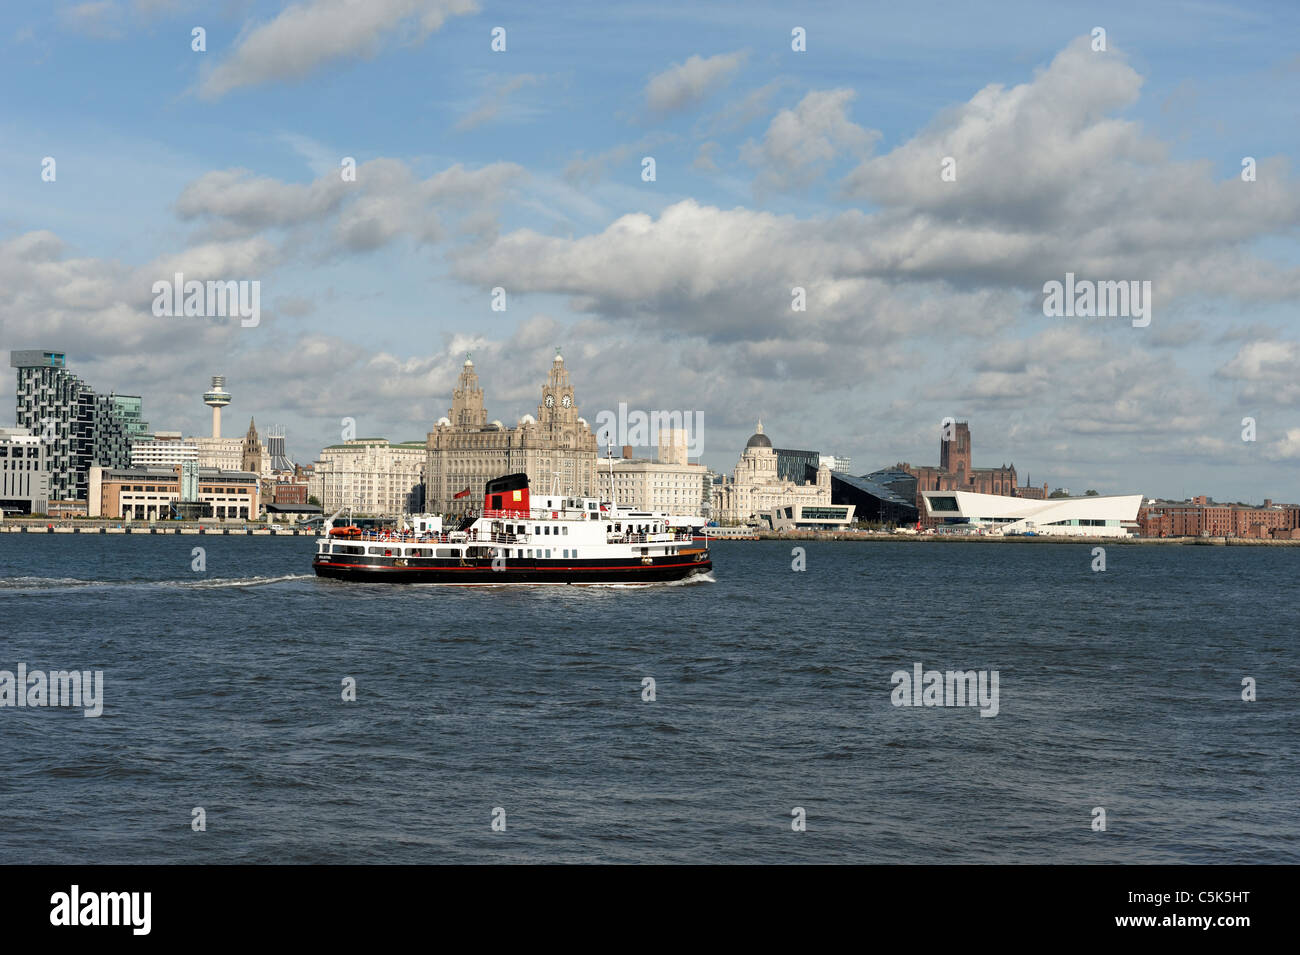 River Mersey passenger ferry approaching Liverpool - Stock Image